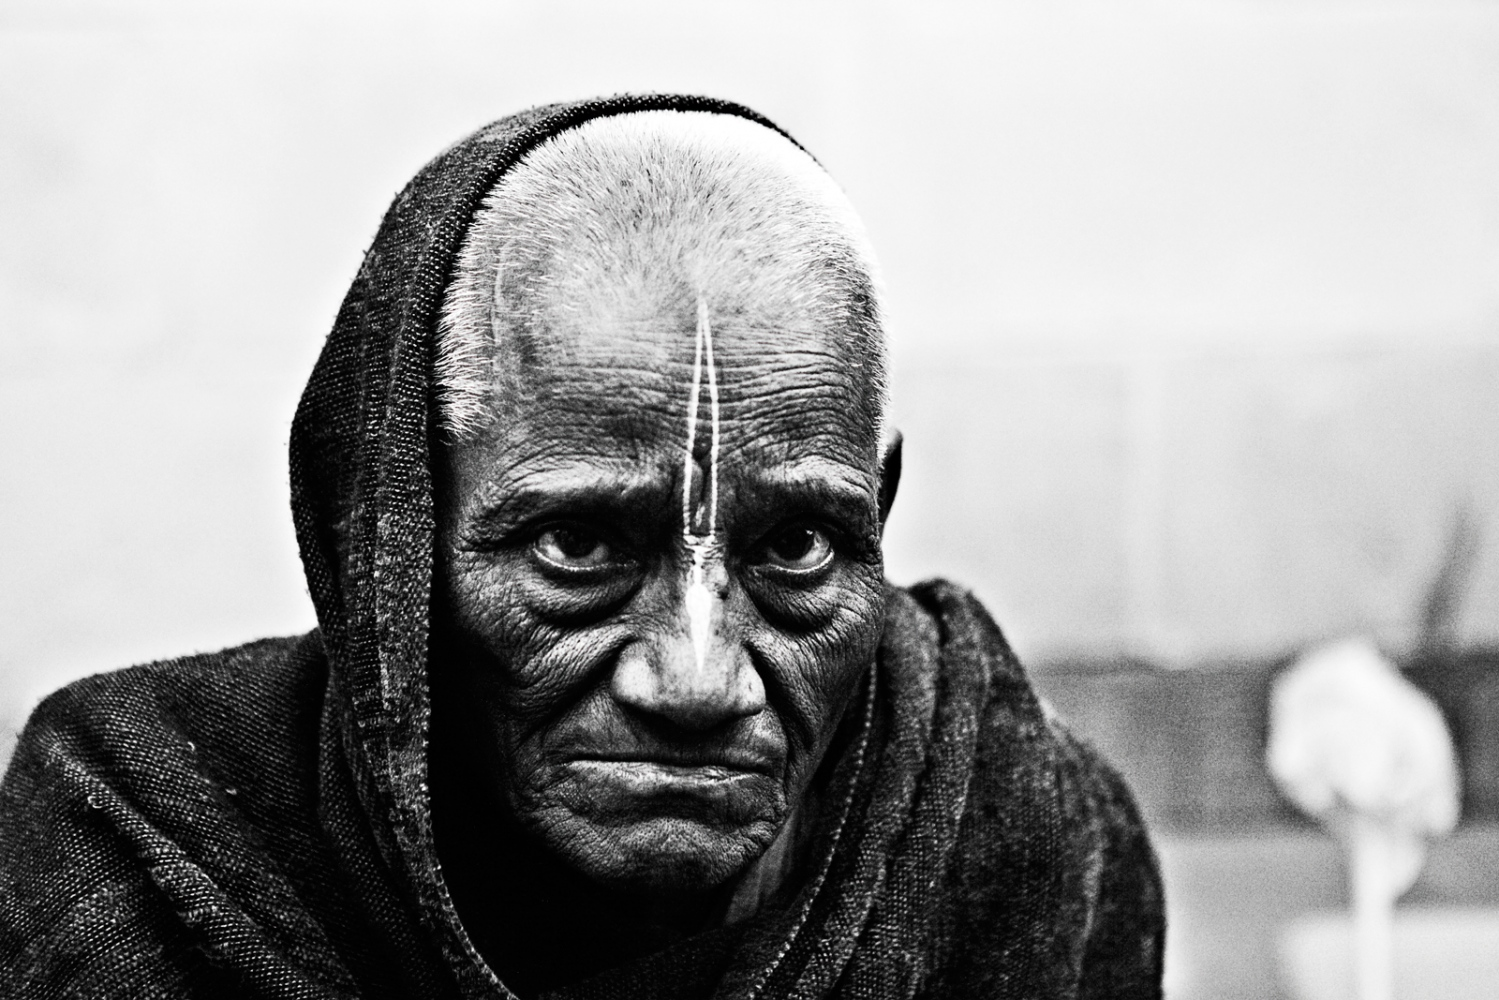 Radha is 84 years old, she begs on the streets and chants at the Sri Bhayan Ashram. Her son is poor and hecouldn't take care of her back home,nine yearsago she decided to come to Vrindavan. She hasn't see her son since.